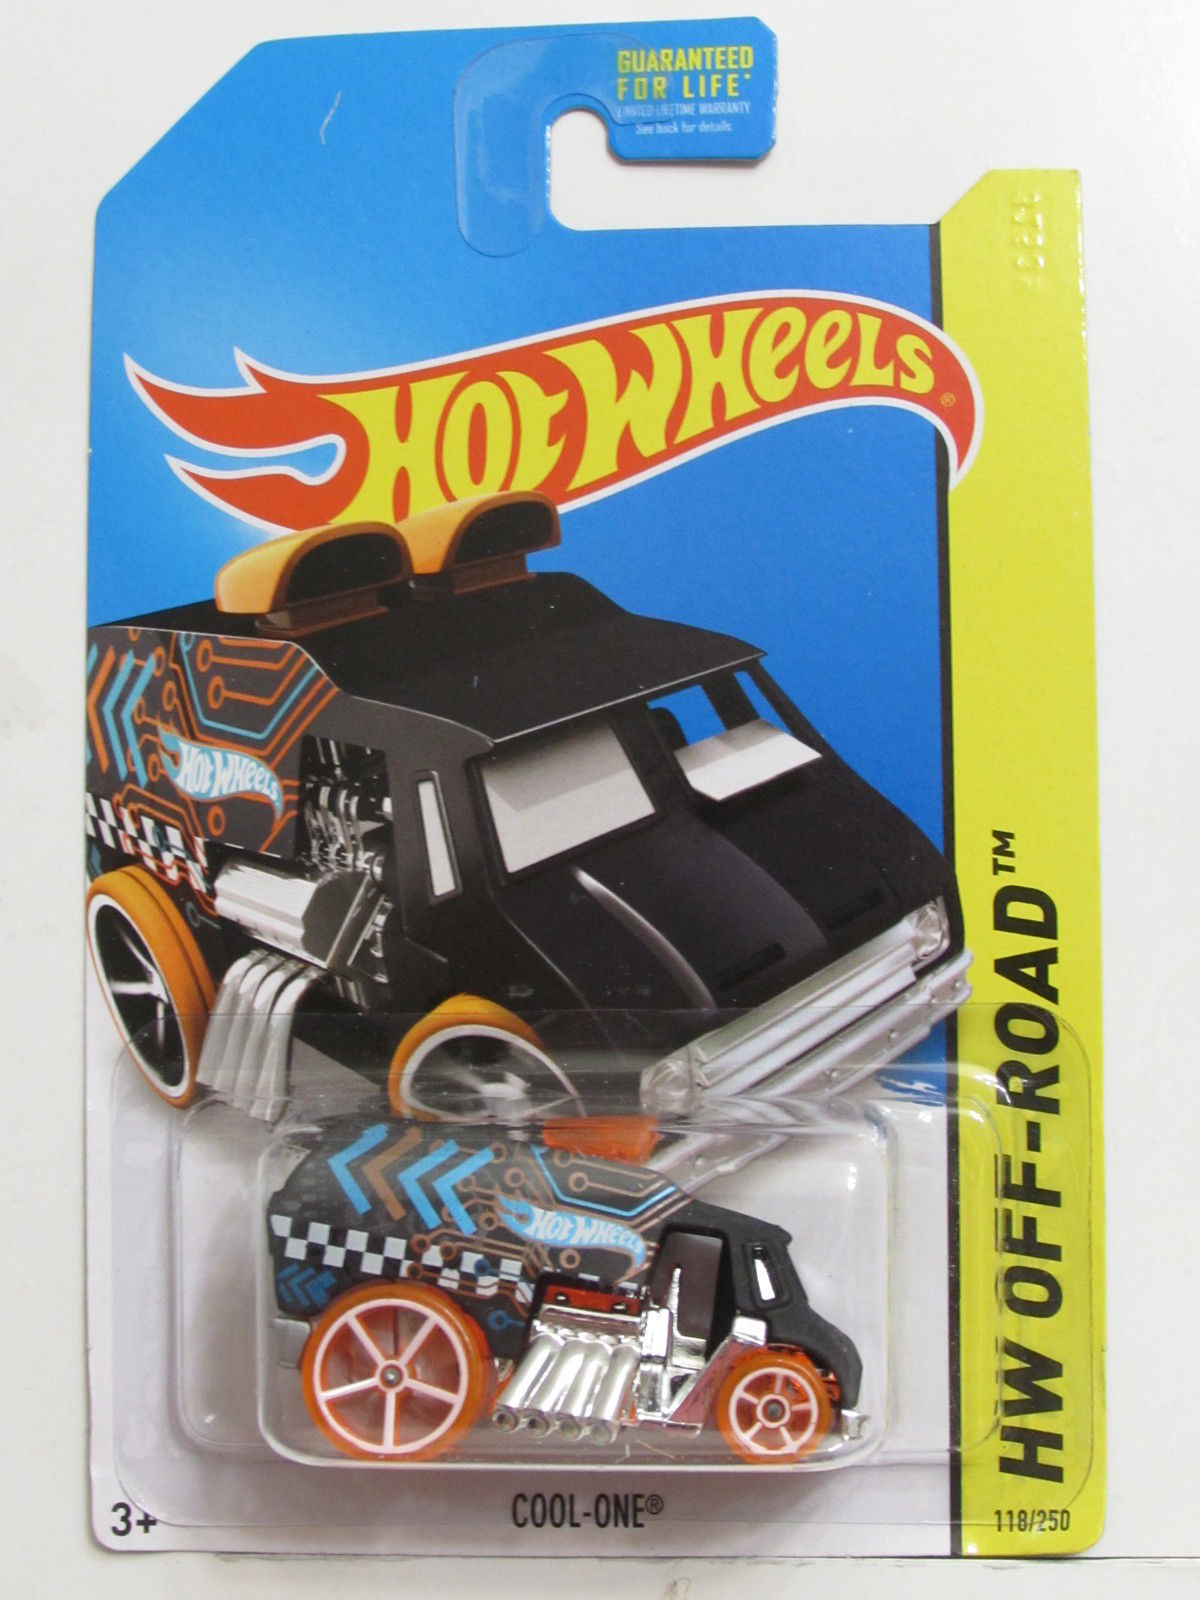 HOT WHEELS 2014 HW OFF-ROAD HW TEST FACILITY COO-ONE